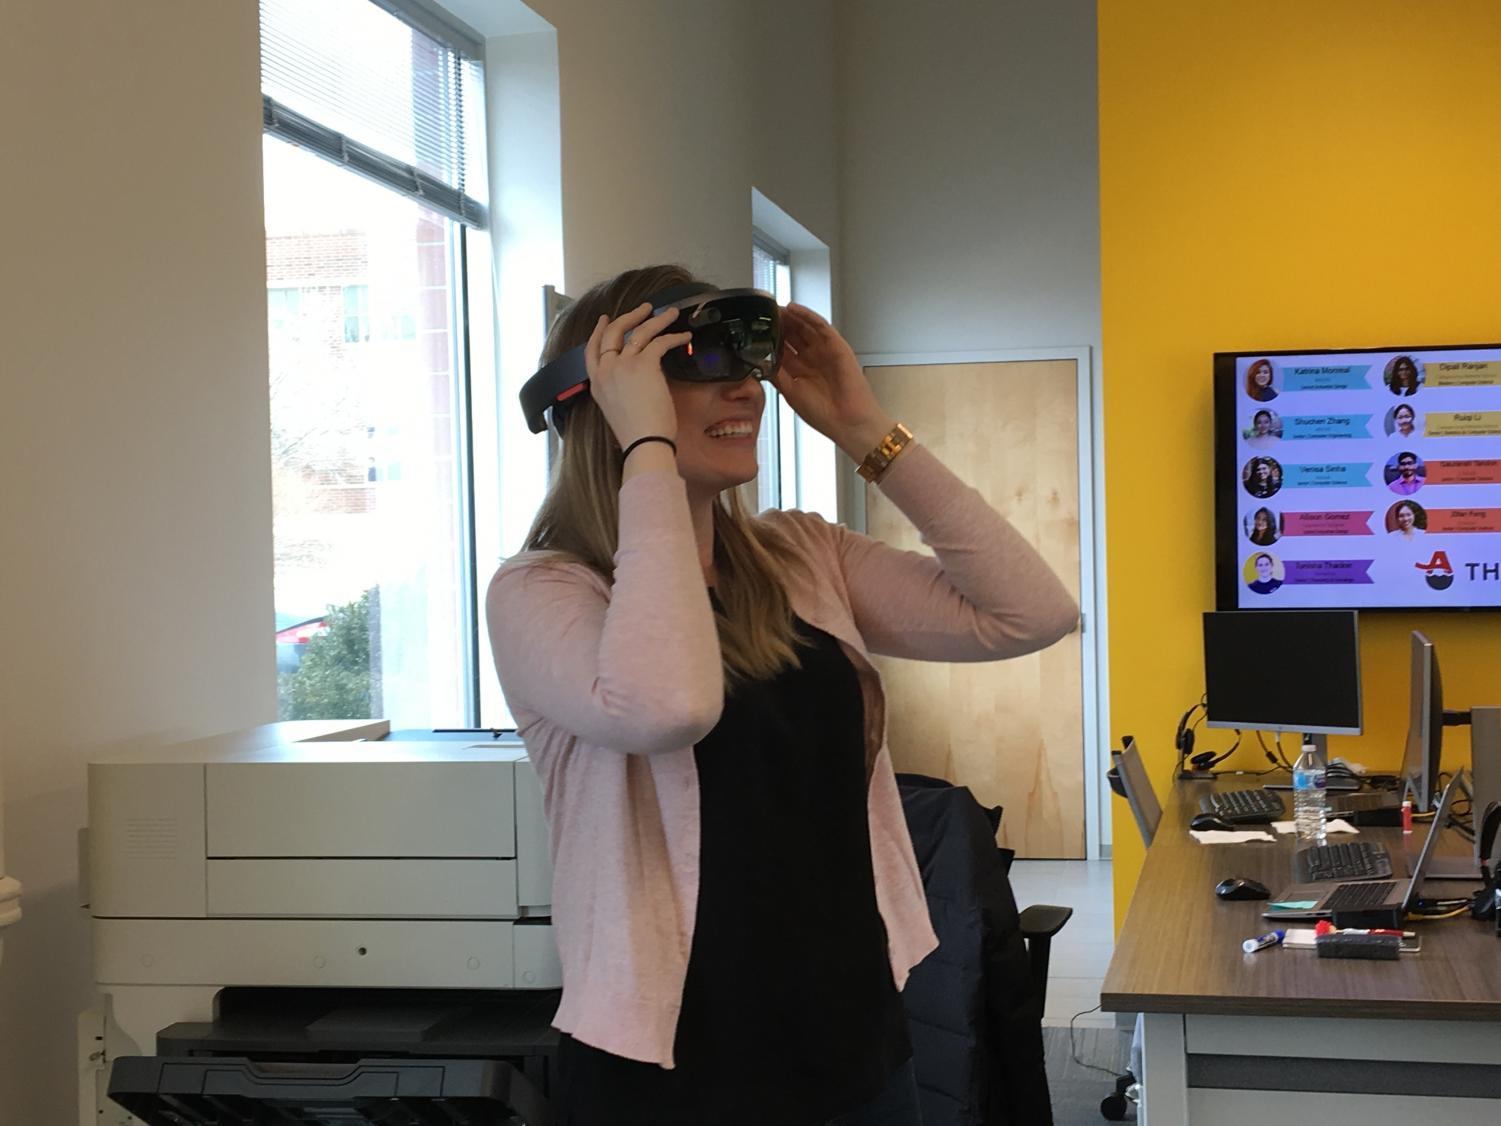 Sarah Woody tries on glasses for a recent augmented reality project at AARP's technology lab, The Tech Nest, in Research Park. AARP is a nonprofit organization that strives to benefit those who are aging with innovative solutions.